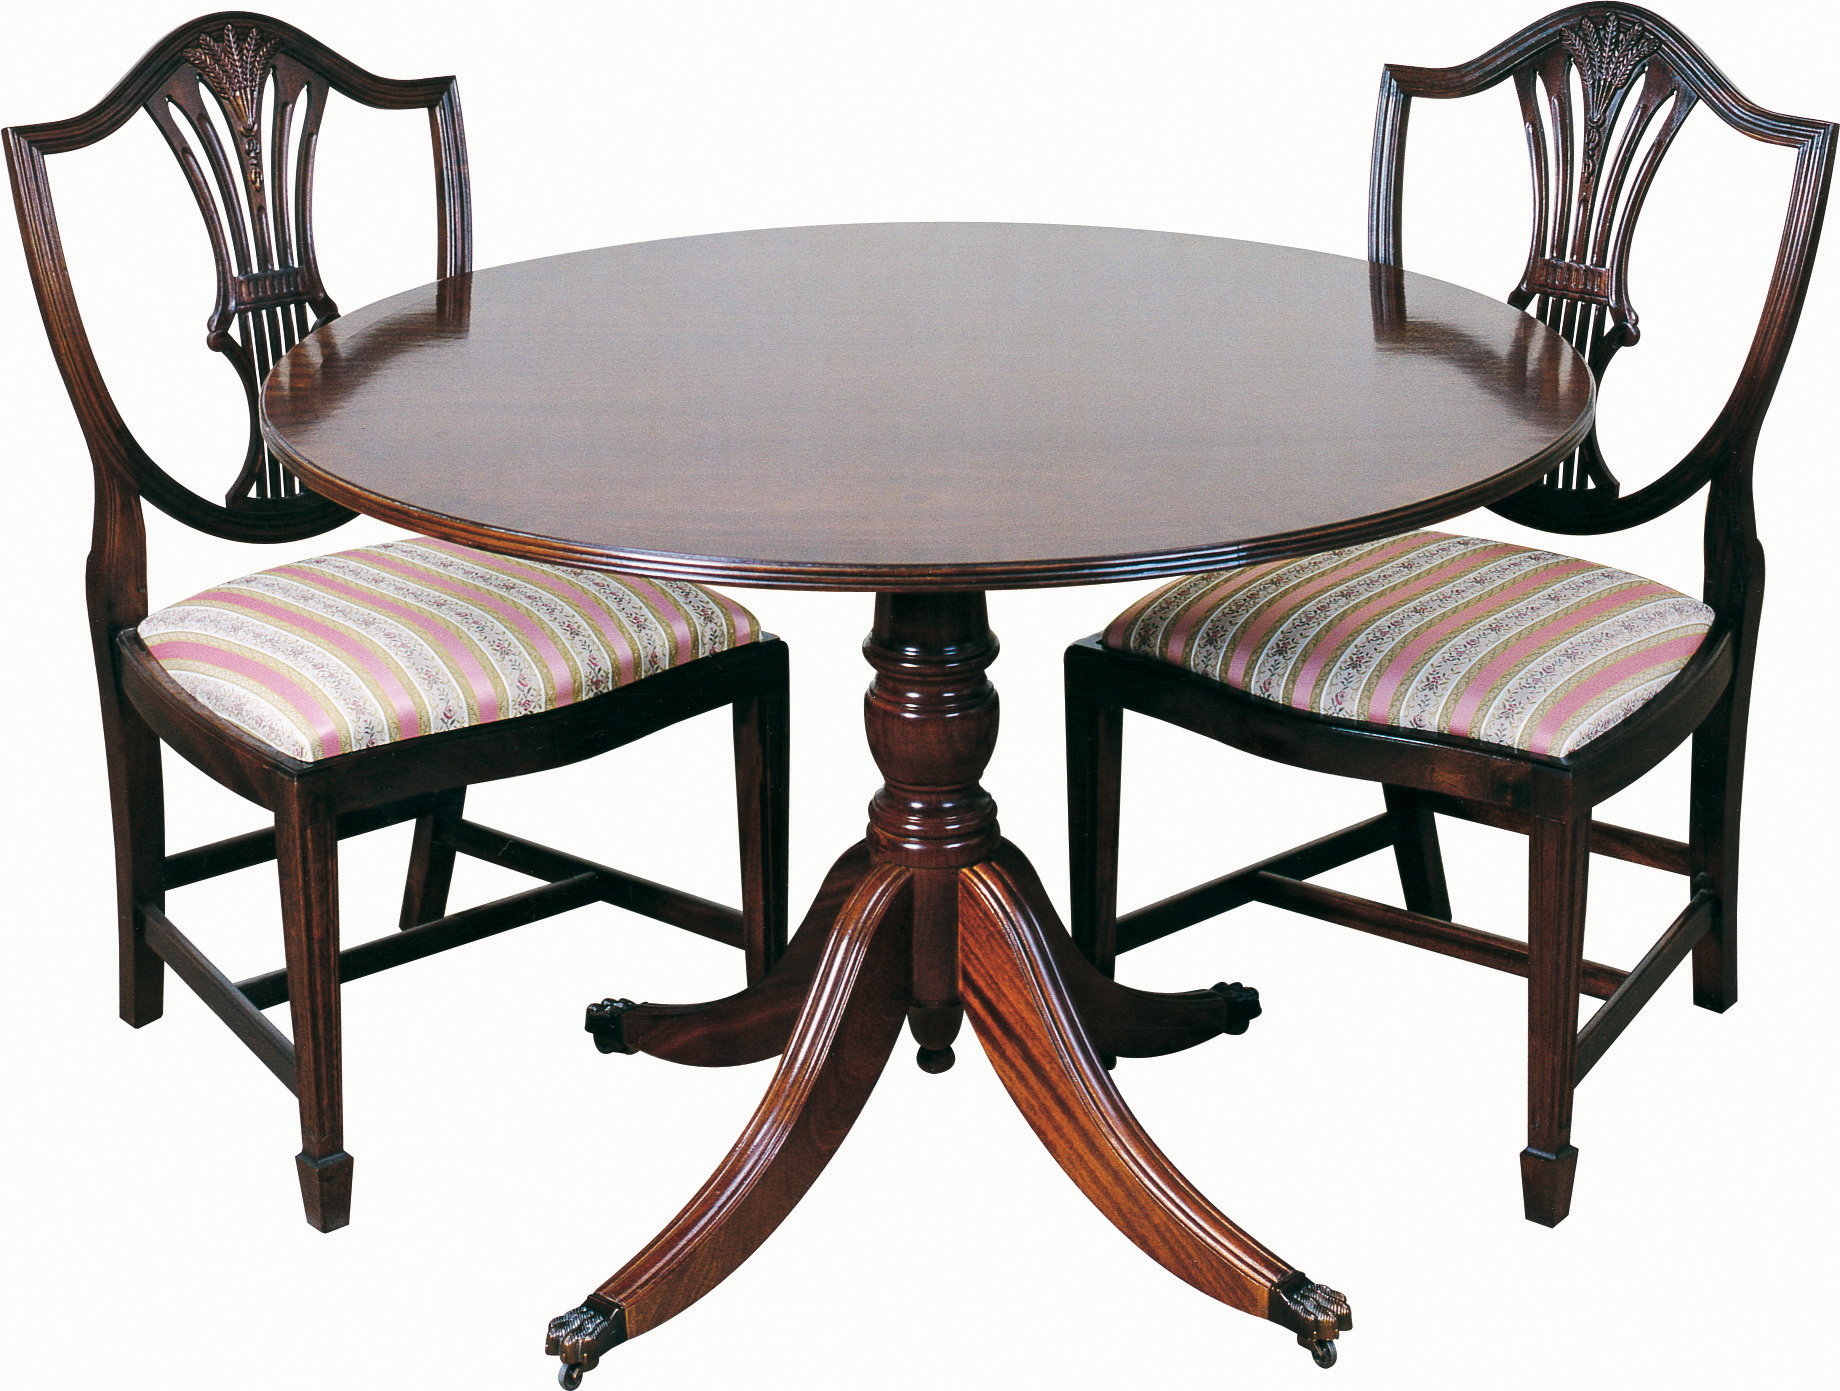 36 Diameter Table Period Style Reproduction